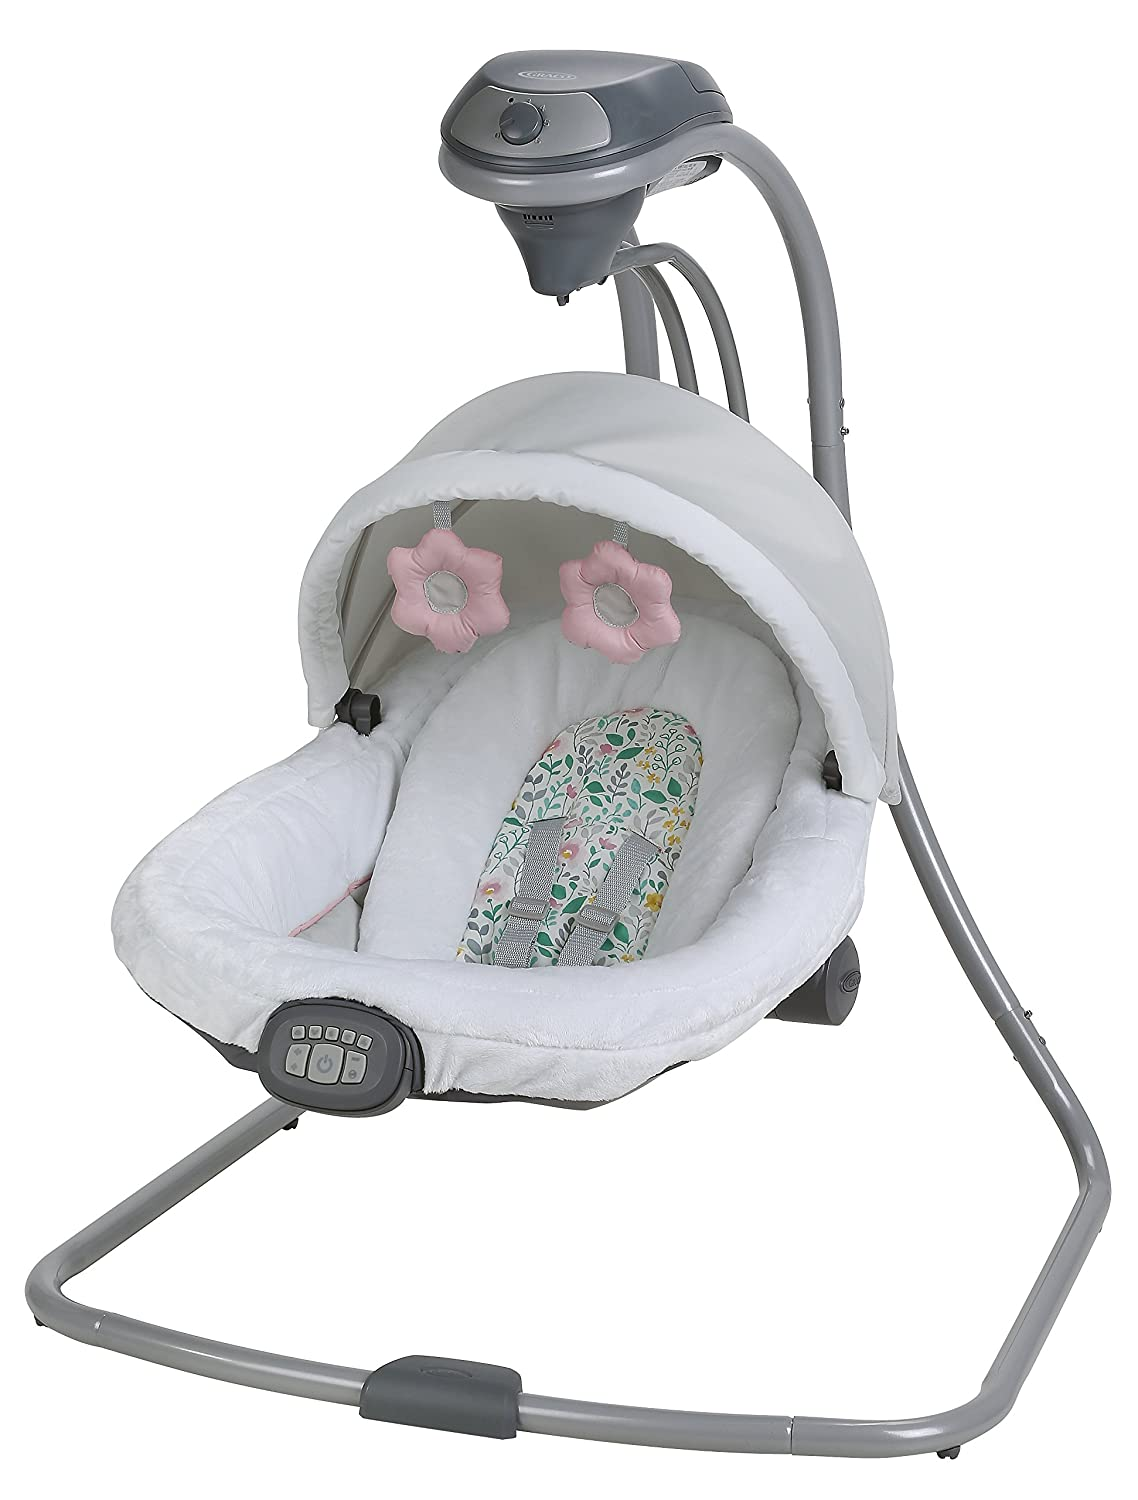 Graco Oasis with Soothe Surround Technology Baby Swing, Tasha 2000751